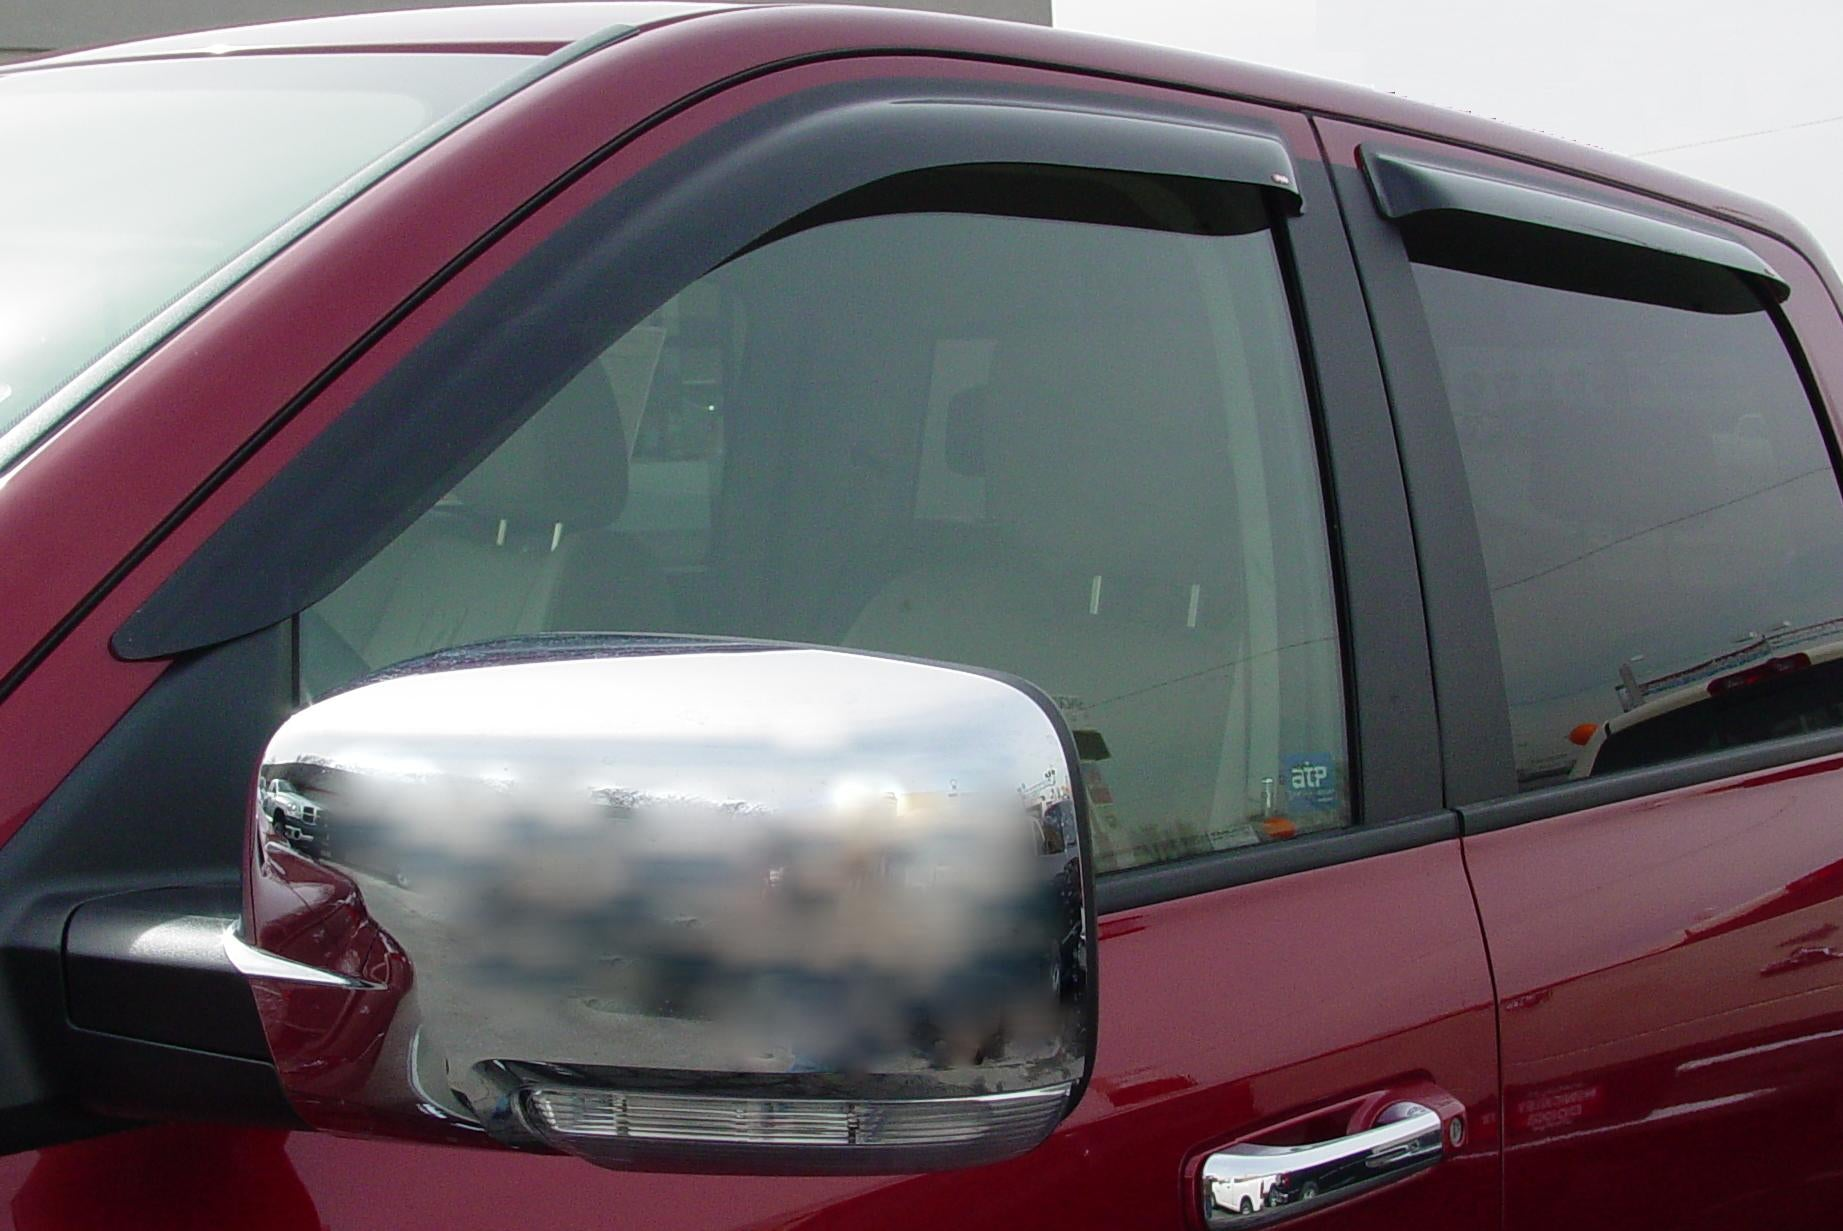 2002 Cadillac Escalade Slim Wind Deflectors